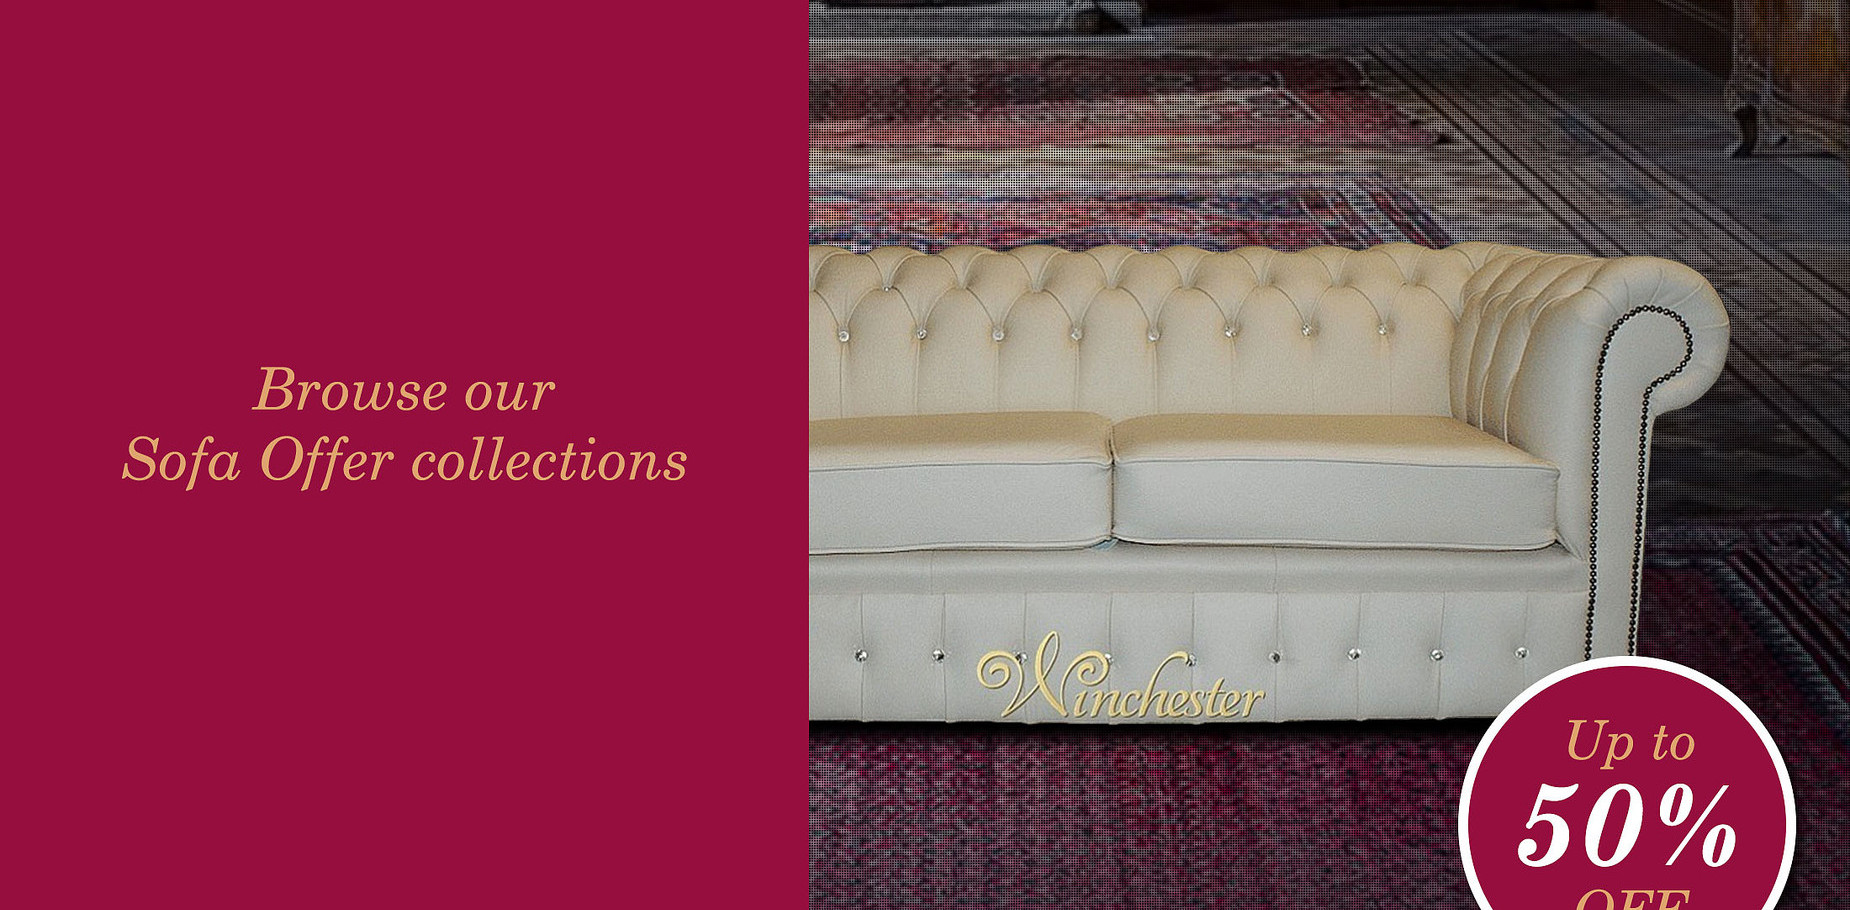 Chesterfield Sofa Offers